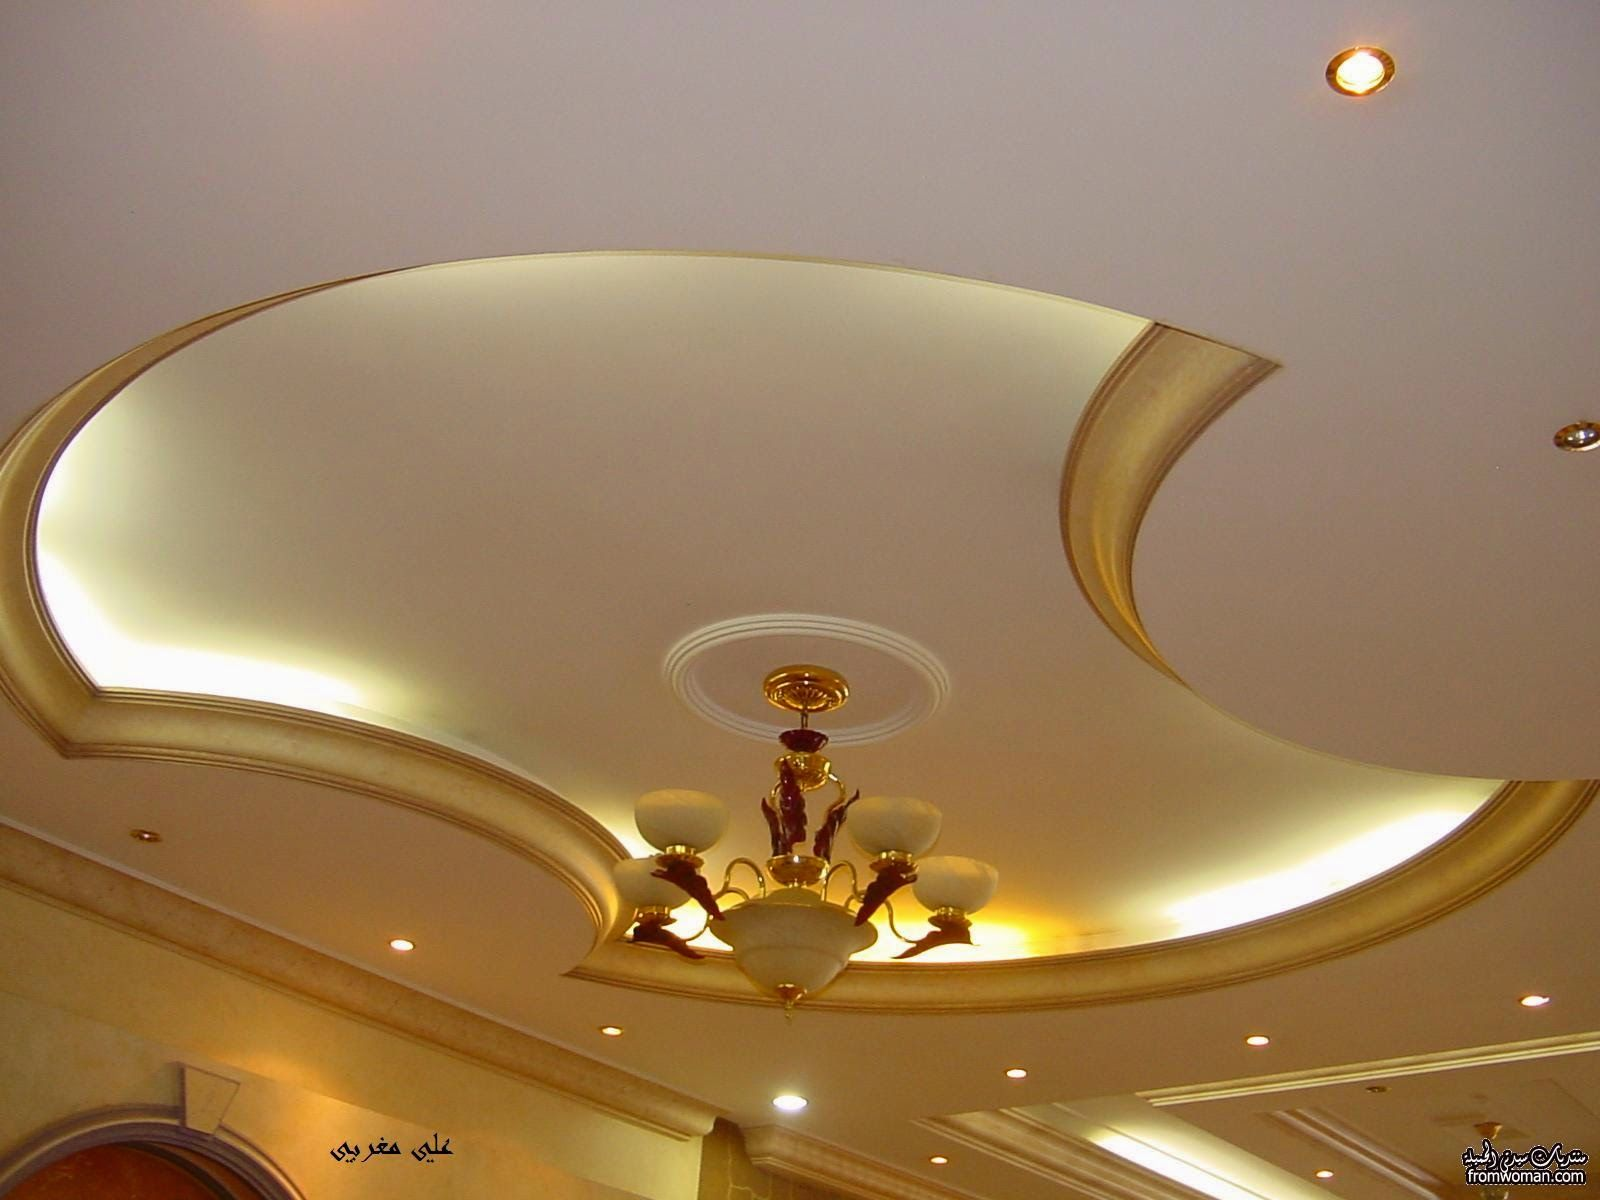 Gypsum Ceiling Designs For Living Room Captivating 4 Curved Gypsum Ceiling Designs For Living Room 2015  Decor Ideas Review